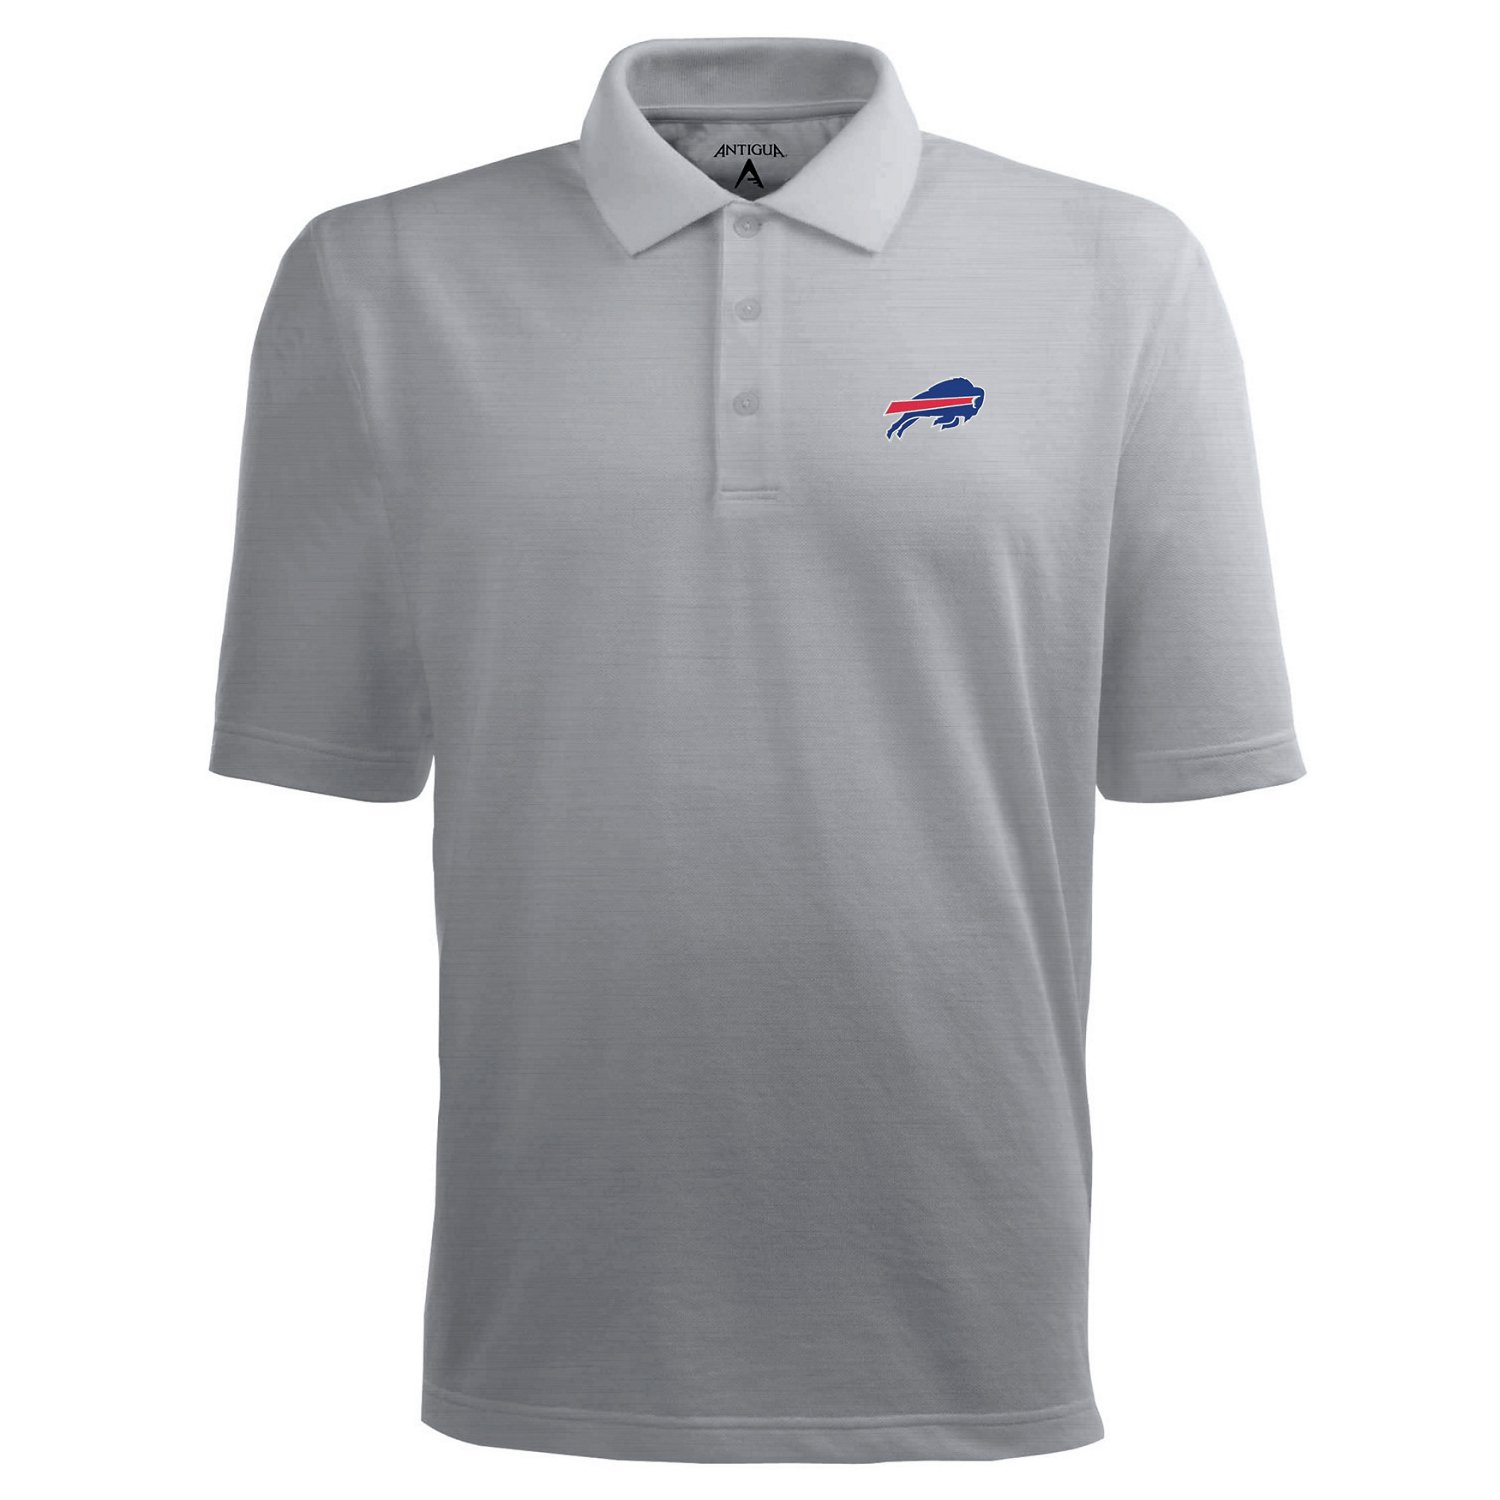 6358eb87 Antigua Men's Buffalo Bills Piqué Xtra-Lite Polo Shirt